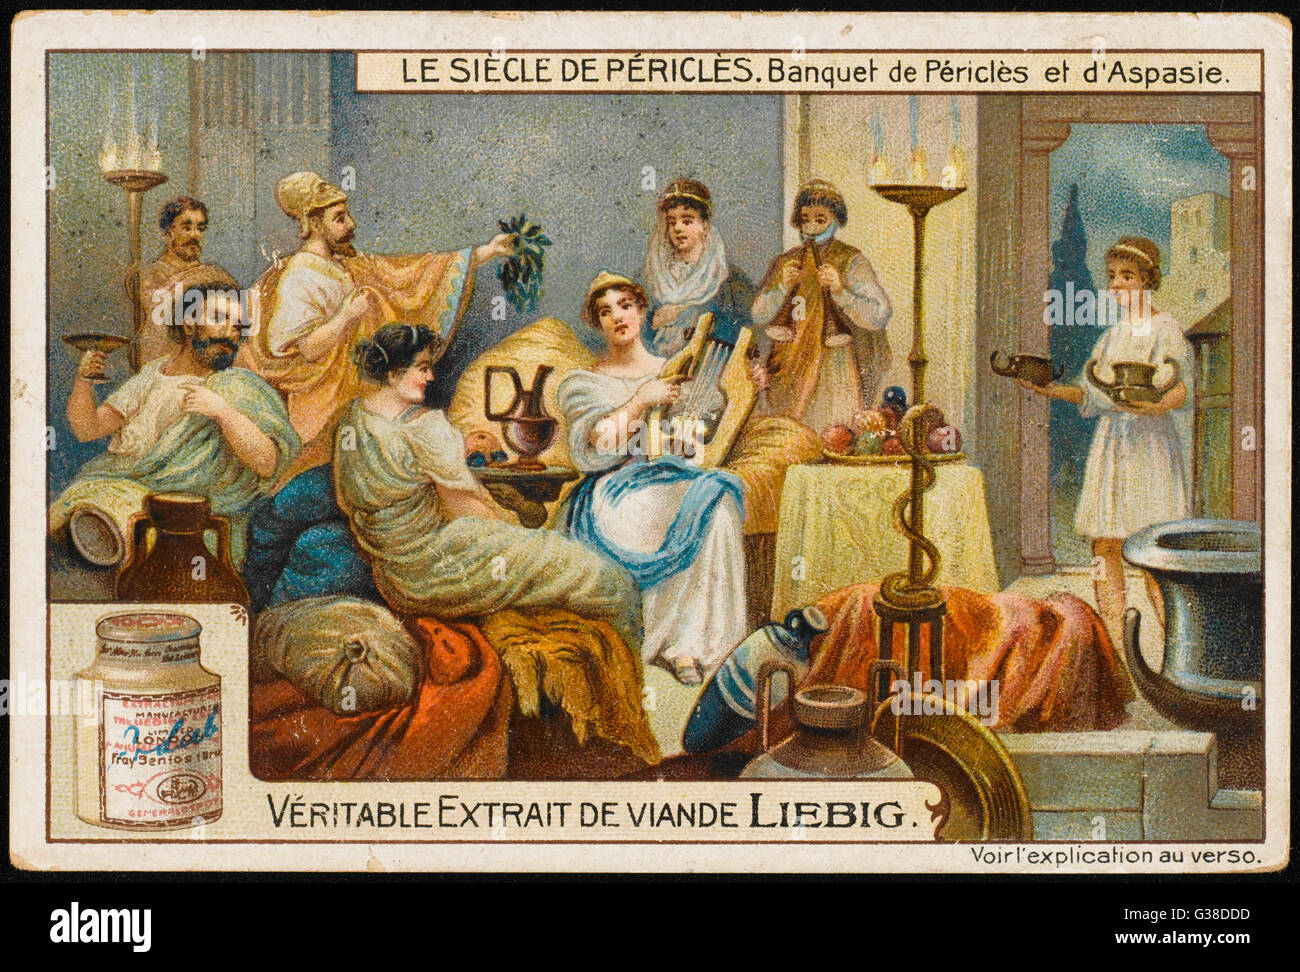 A banquet in the time of  Pericles, 5th century BC         Date: circa 500 BC - Stock Image